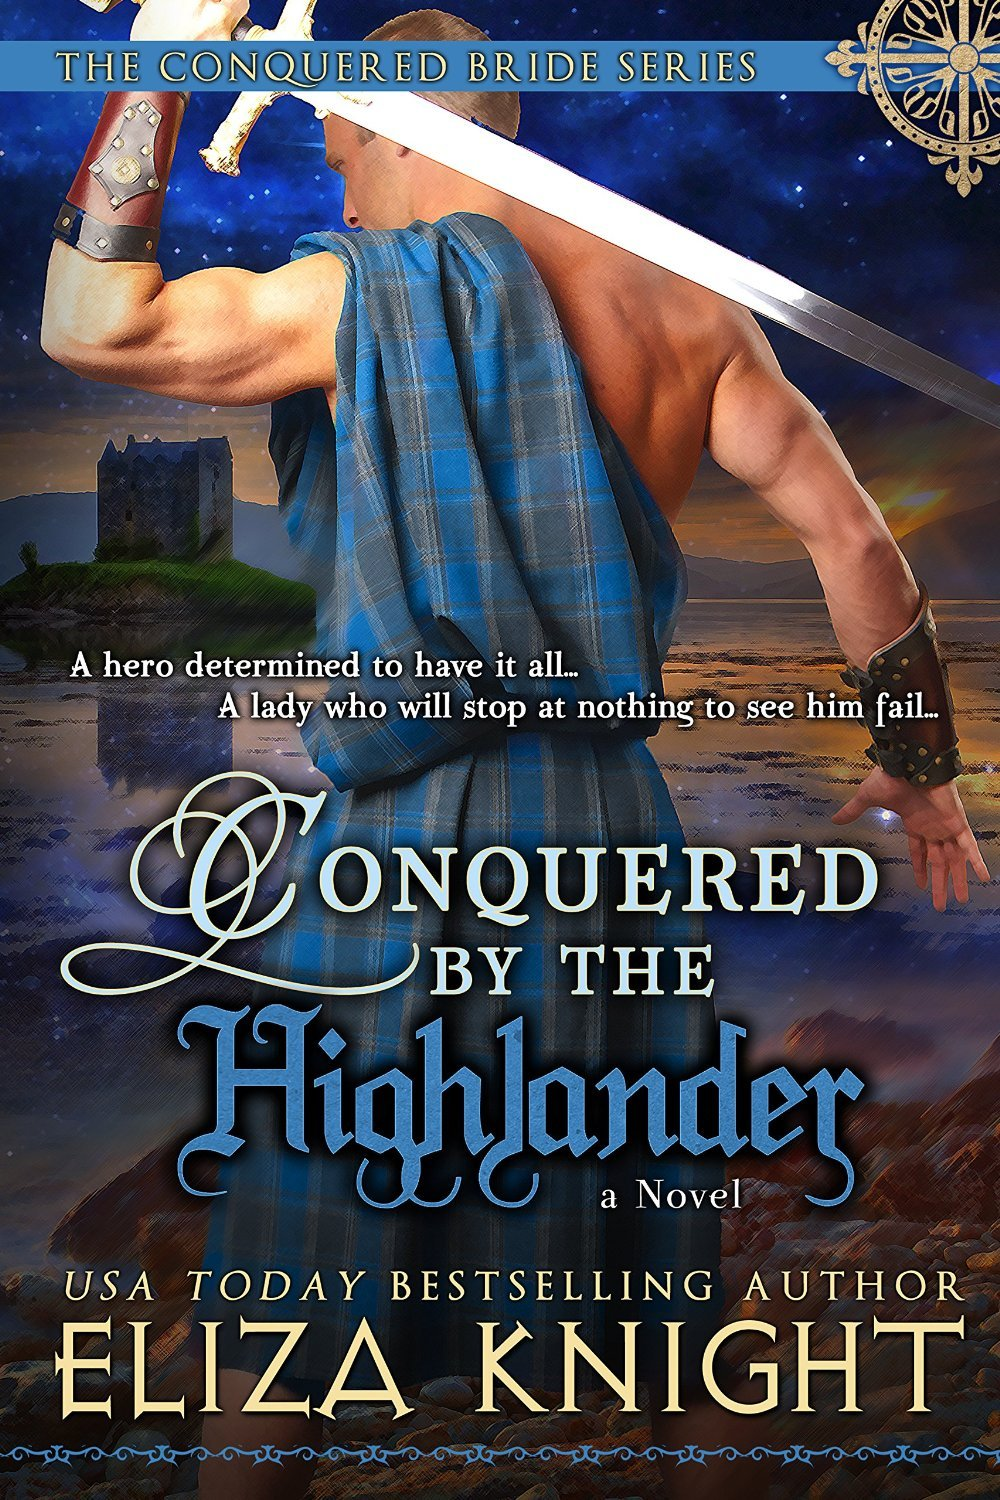 Conquered the Highlander (Conquered Bride, #1) by Eliza Knight